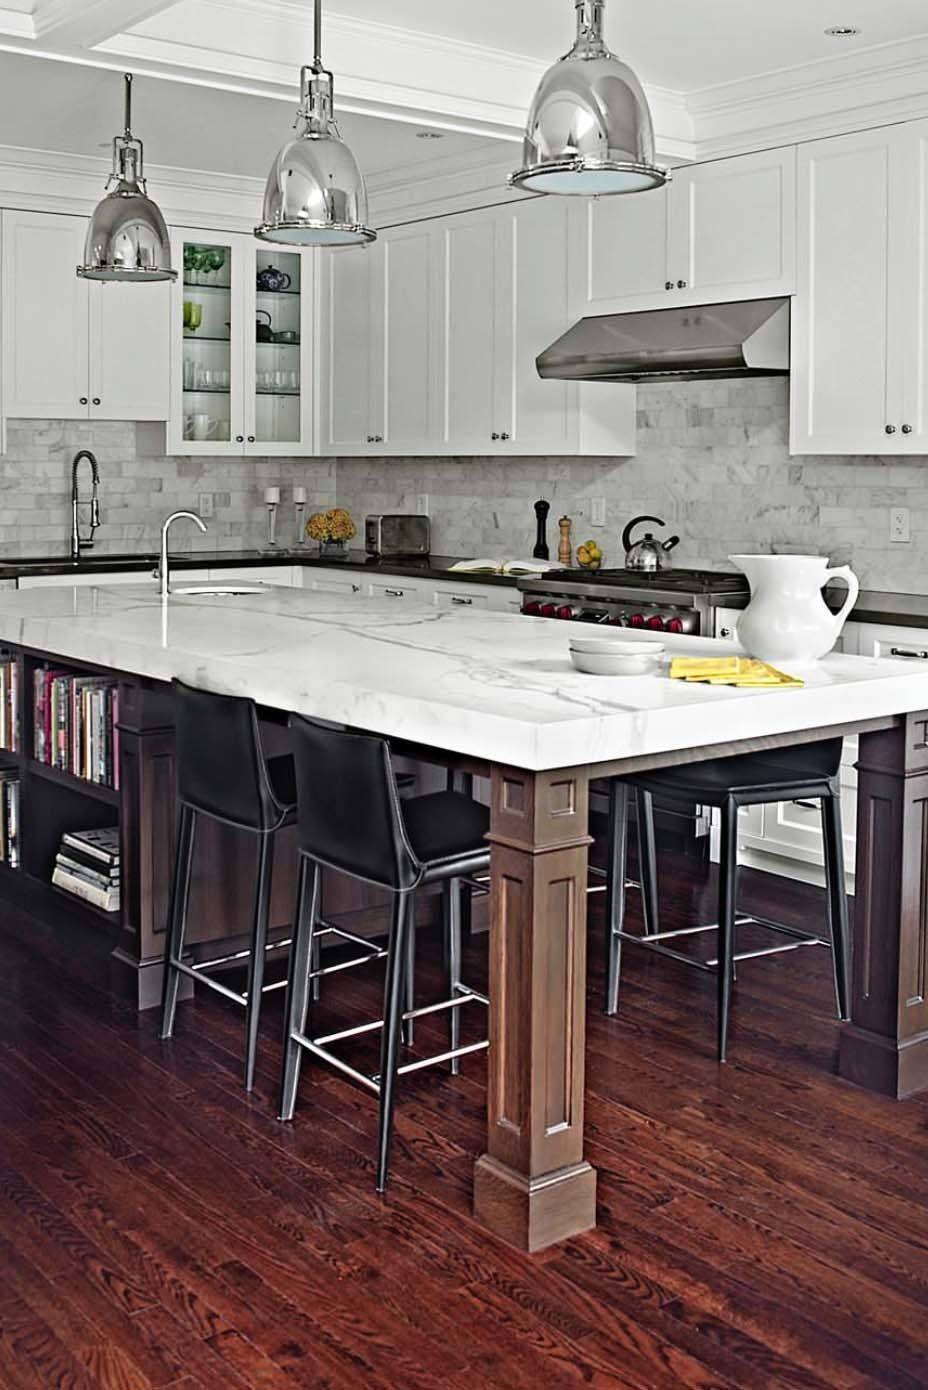 Conventional Kitchen Island with Storage and Dinigng Space